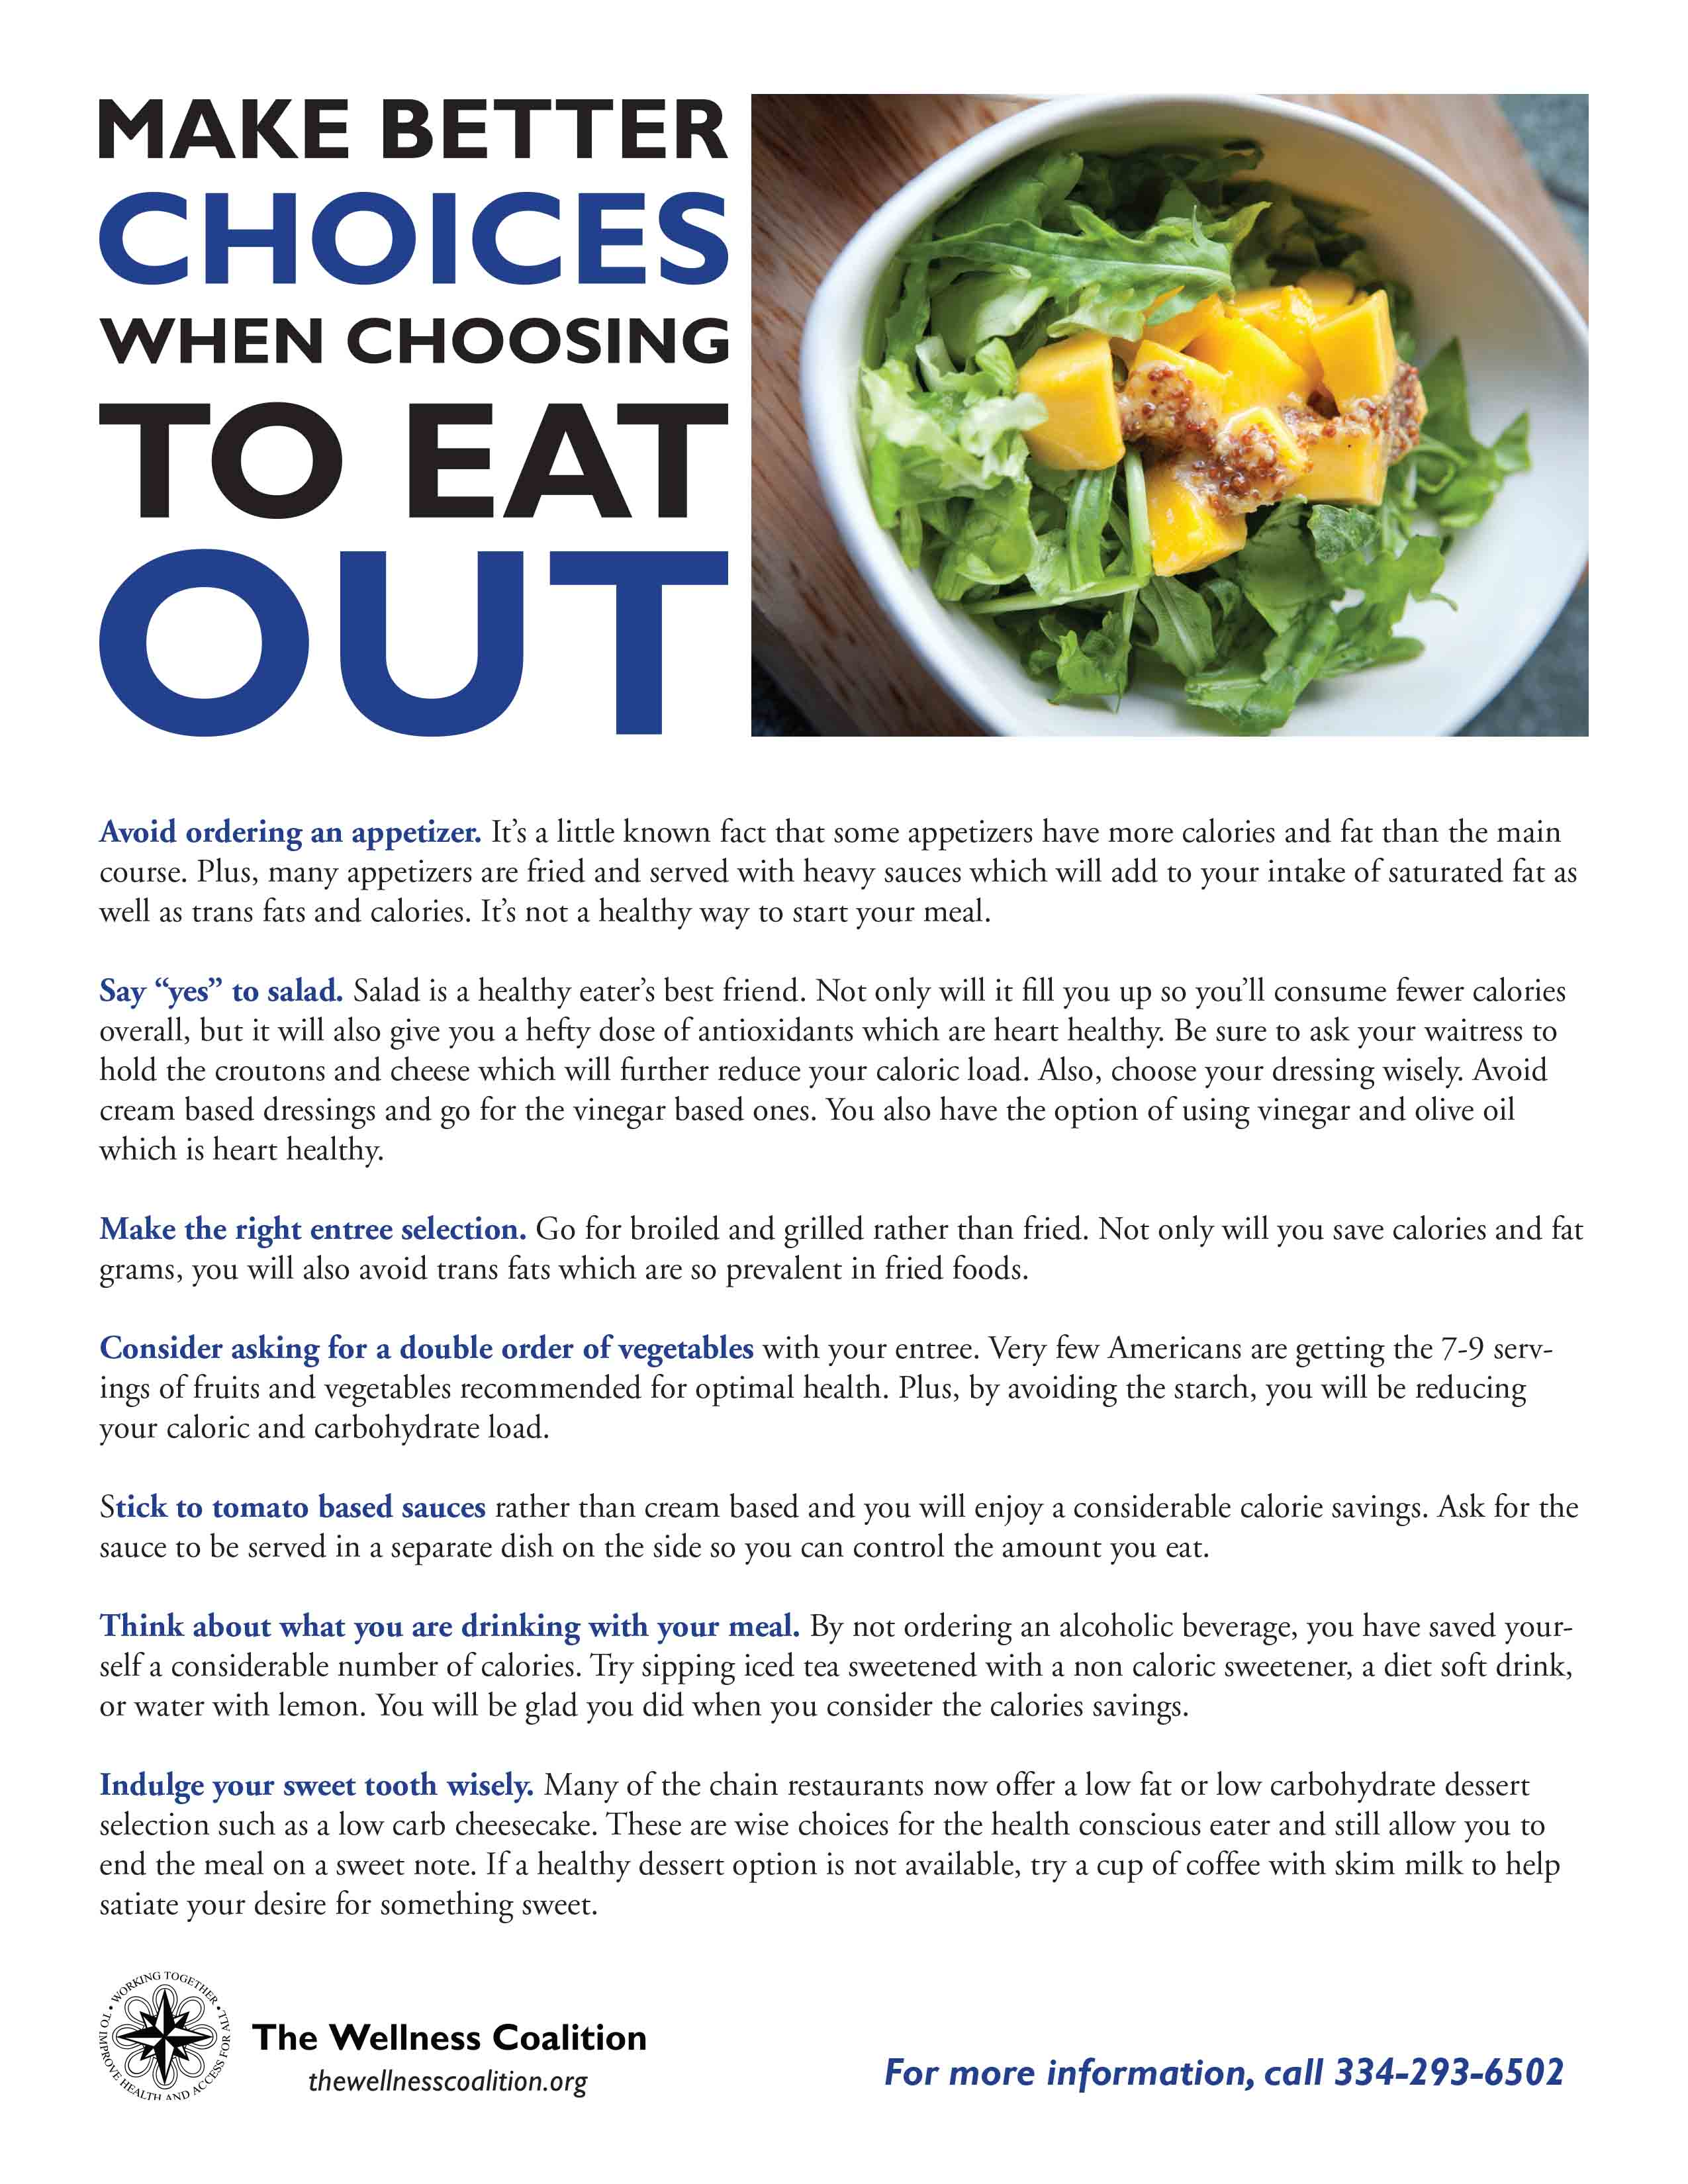 Make Better Choices When Choosing to Eat Out